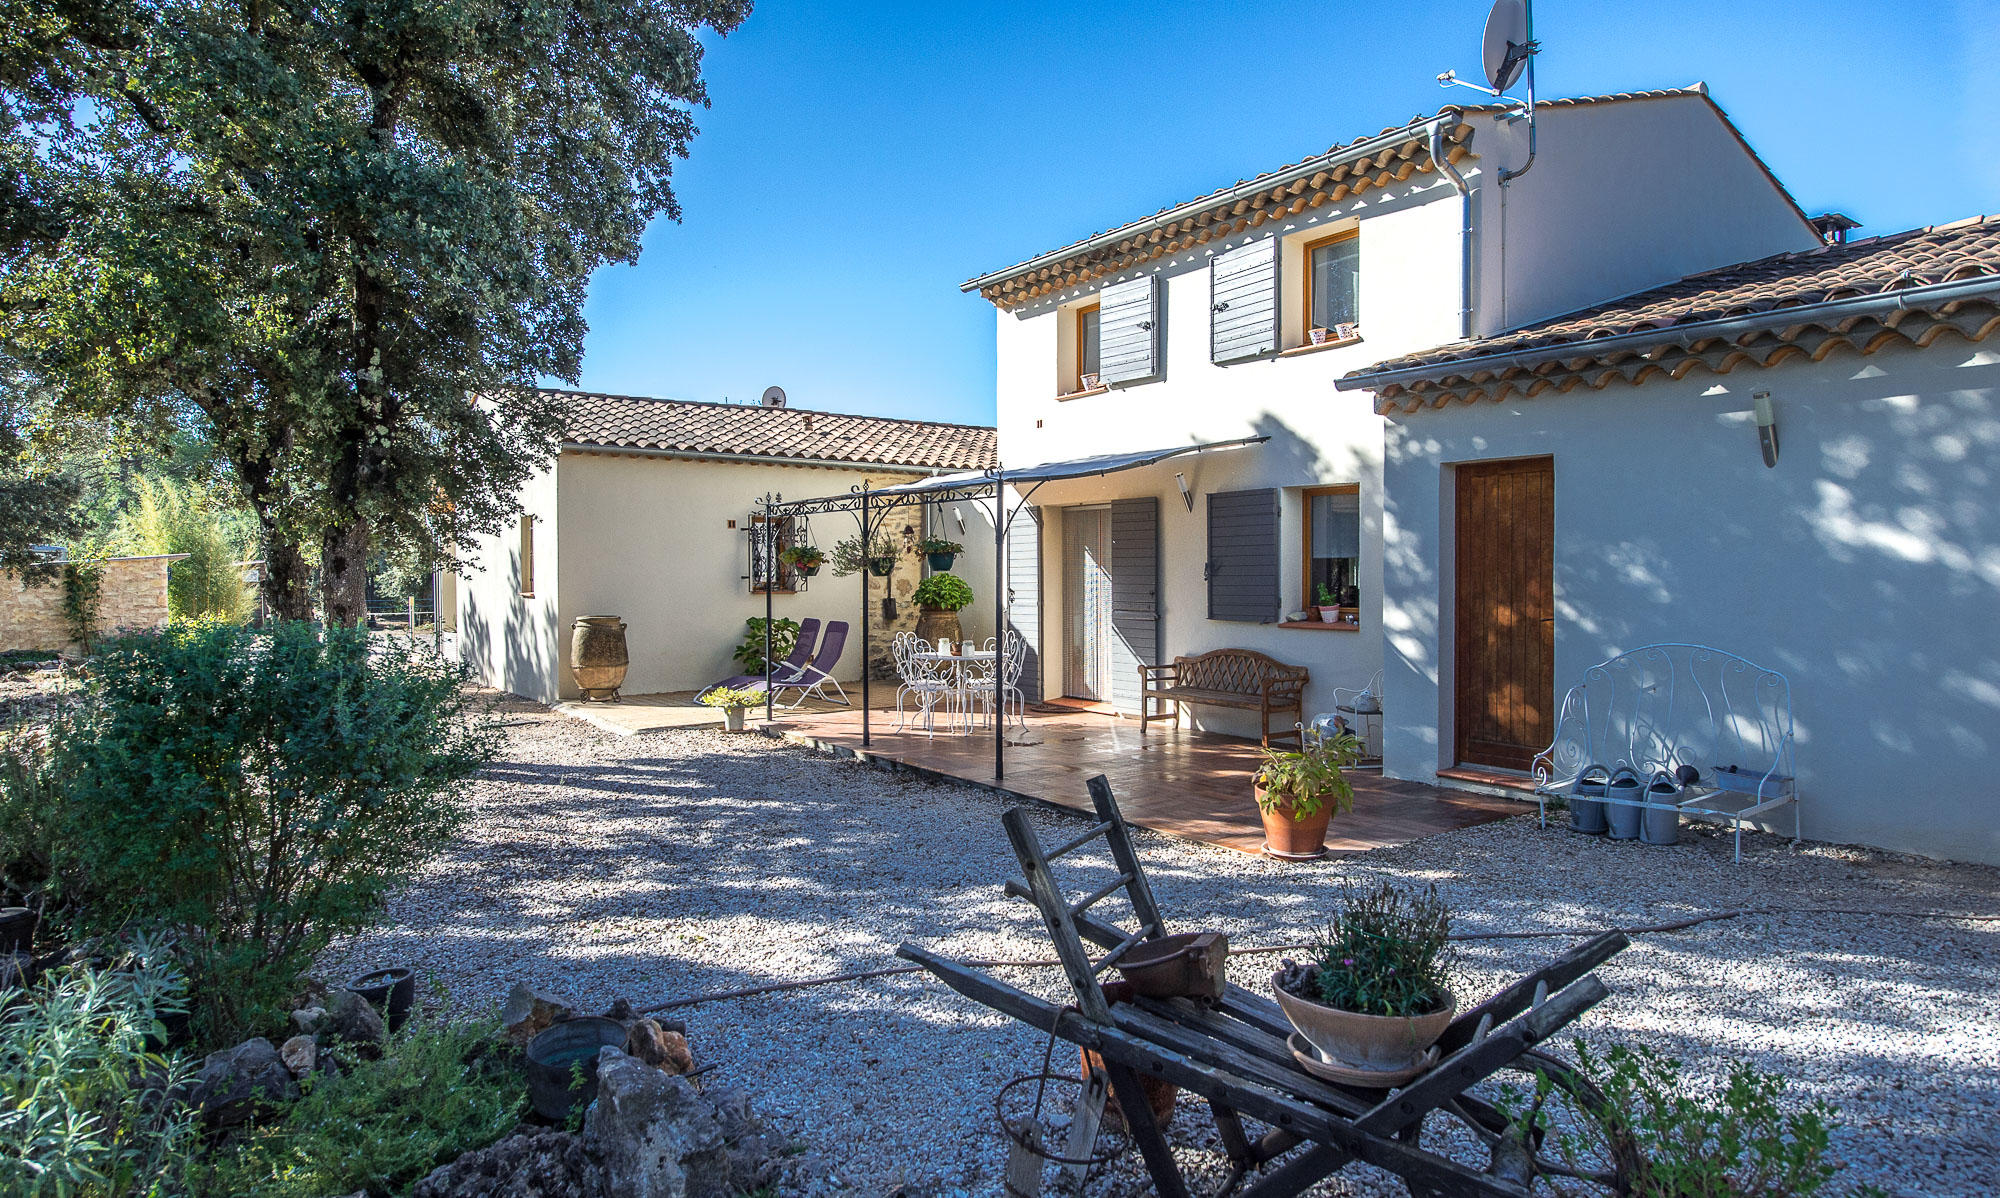 Charming House in Provence Verte